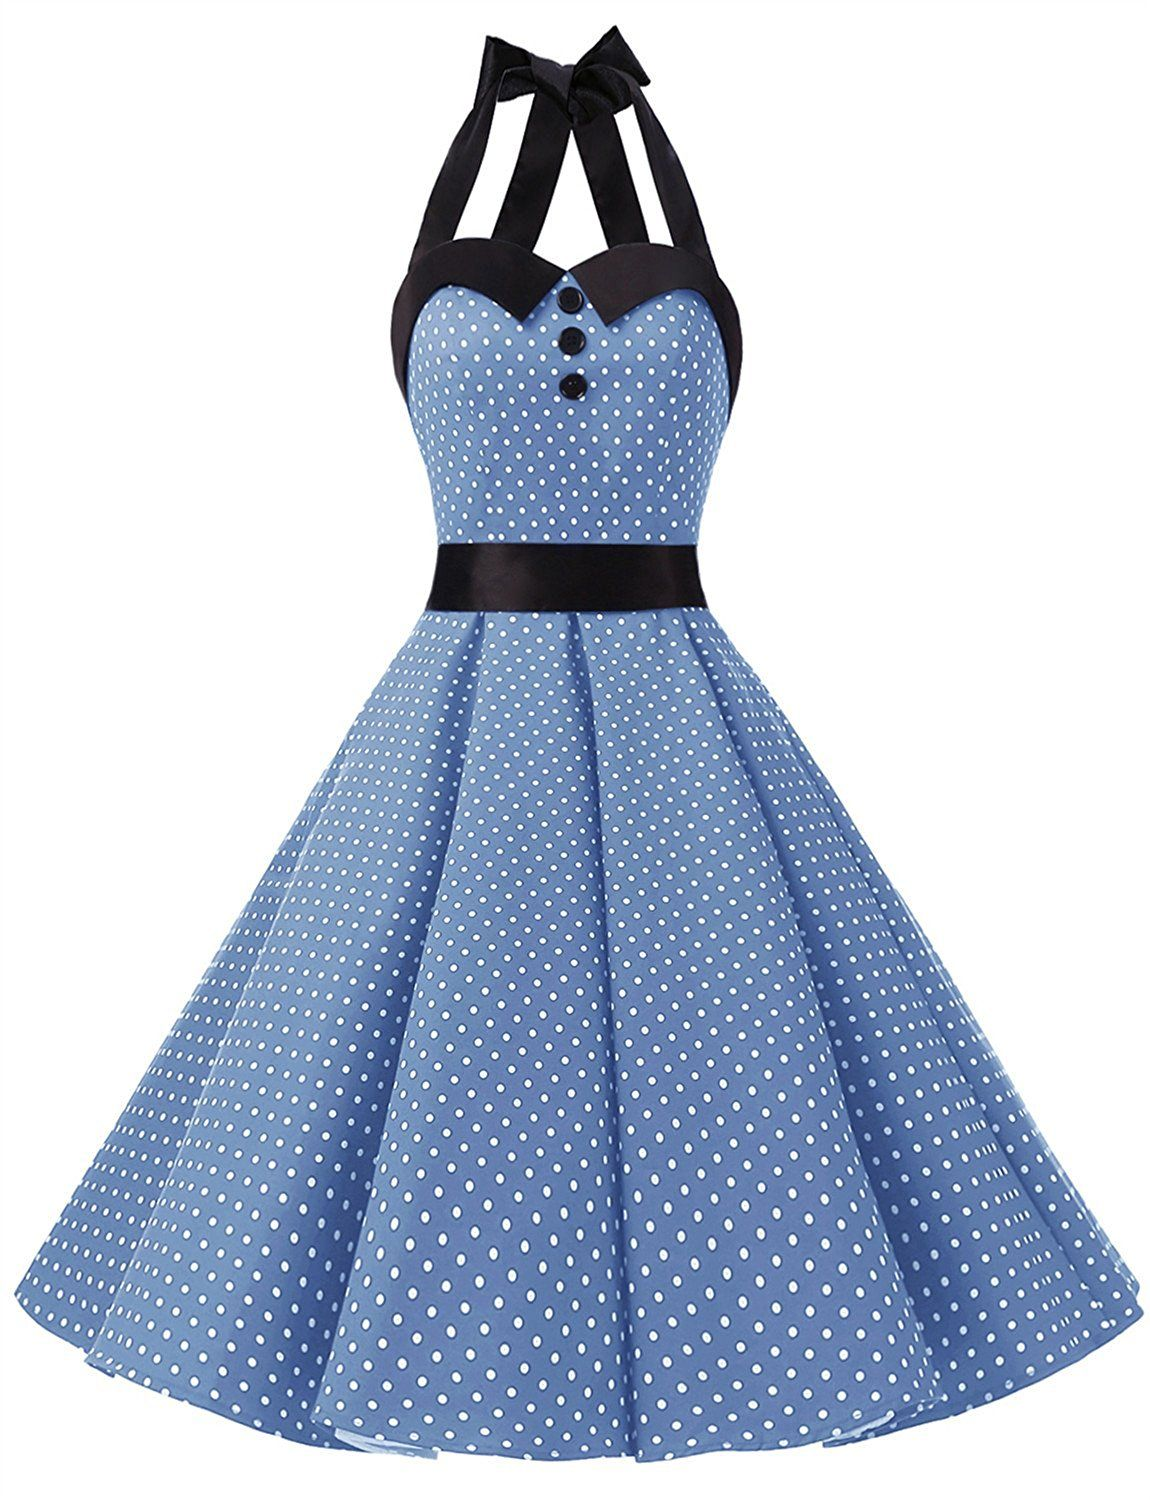 8ca82925608 Amazon.com  Dressystar Vintage Polka Dot Retro Cocktail Prom Dresses 50 s  60 s Rockabilly Bandage  Clothing